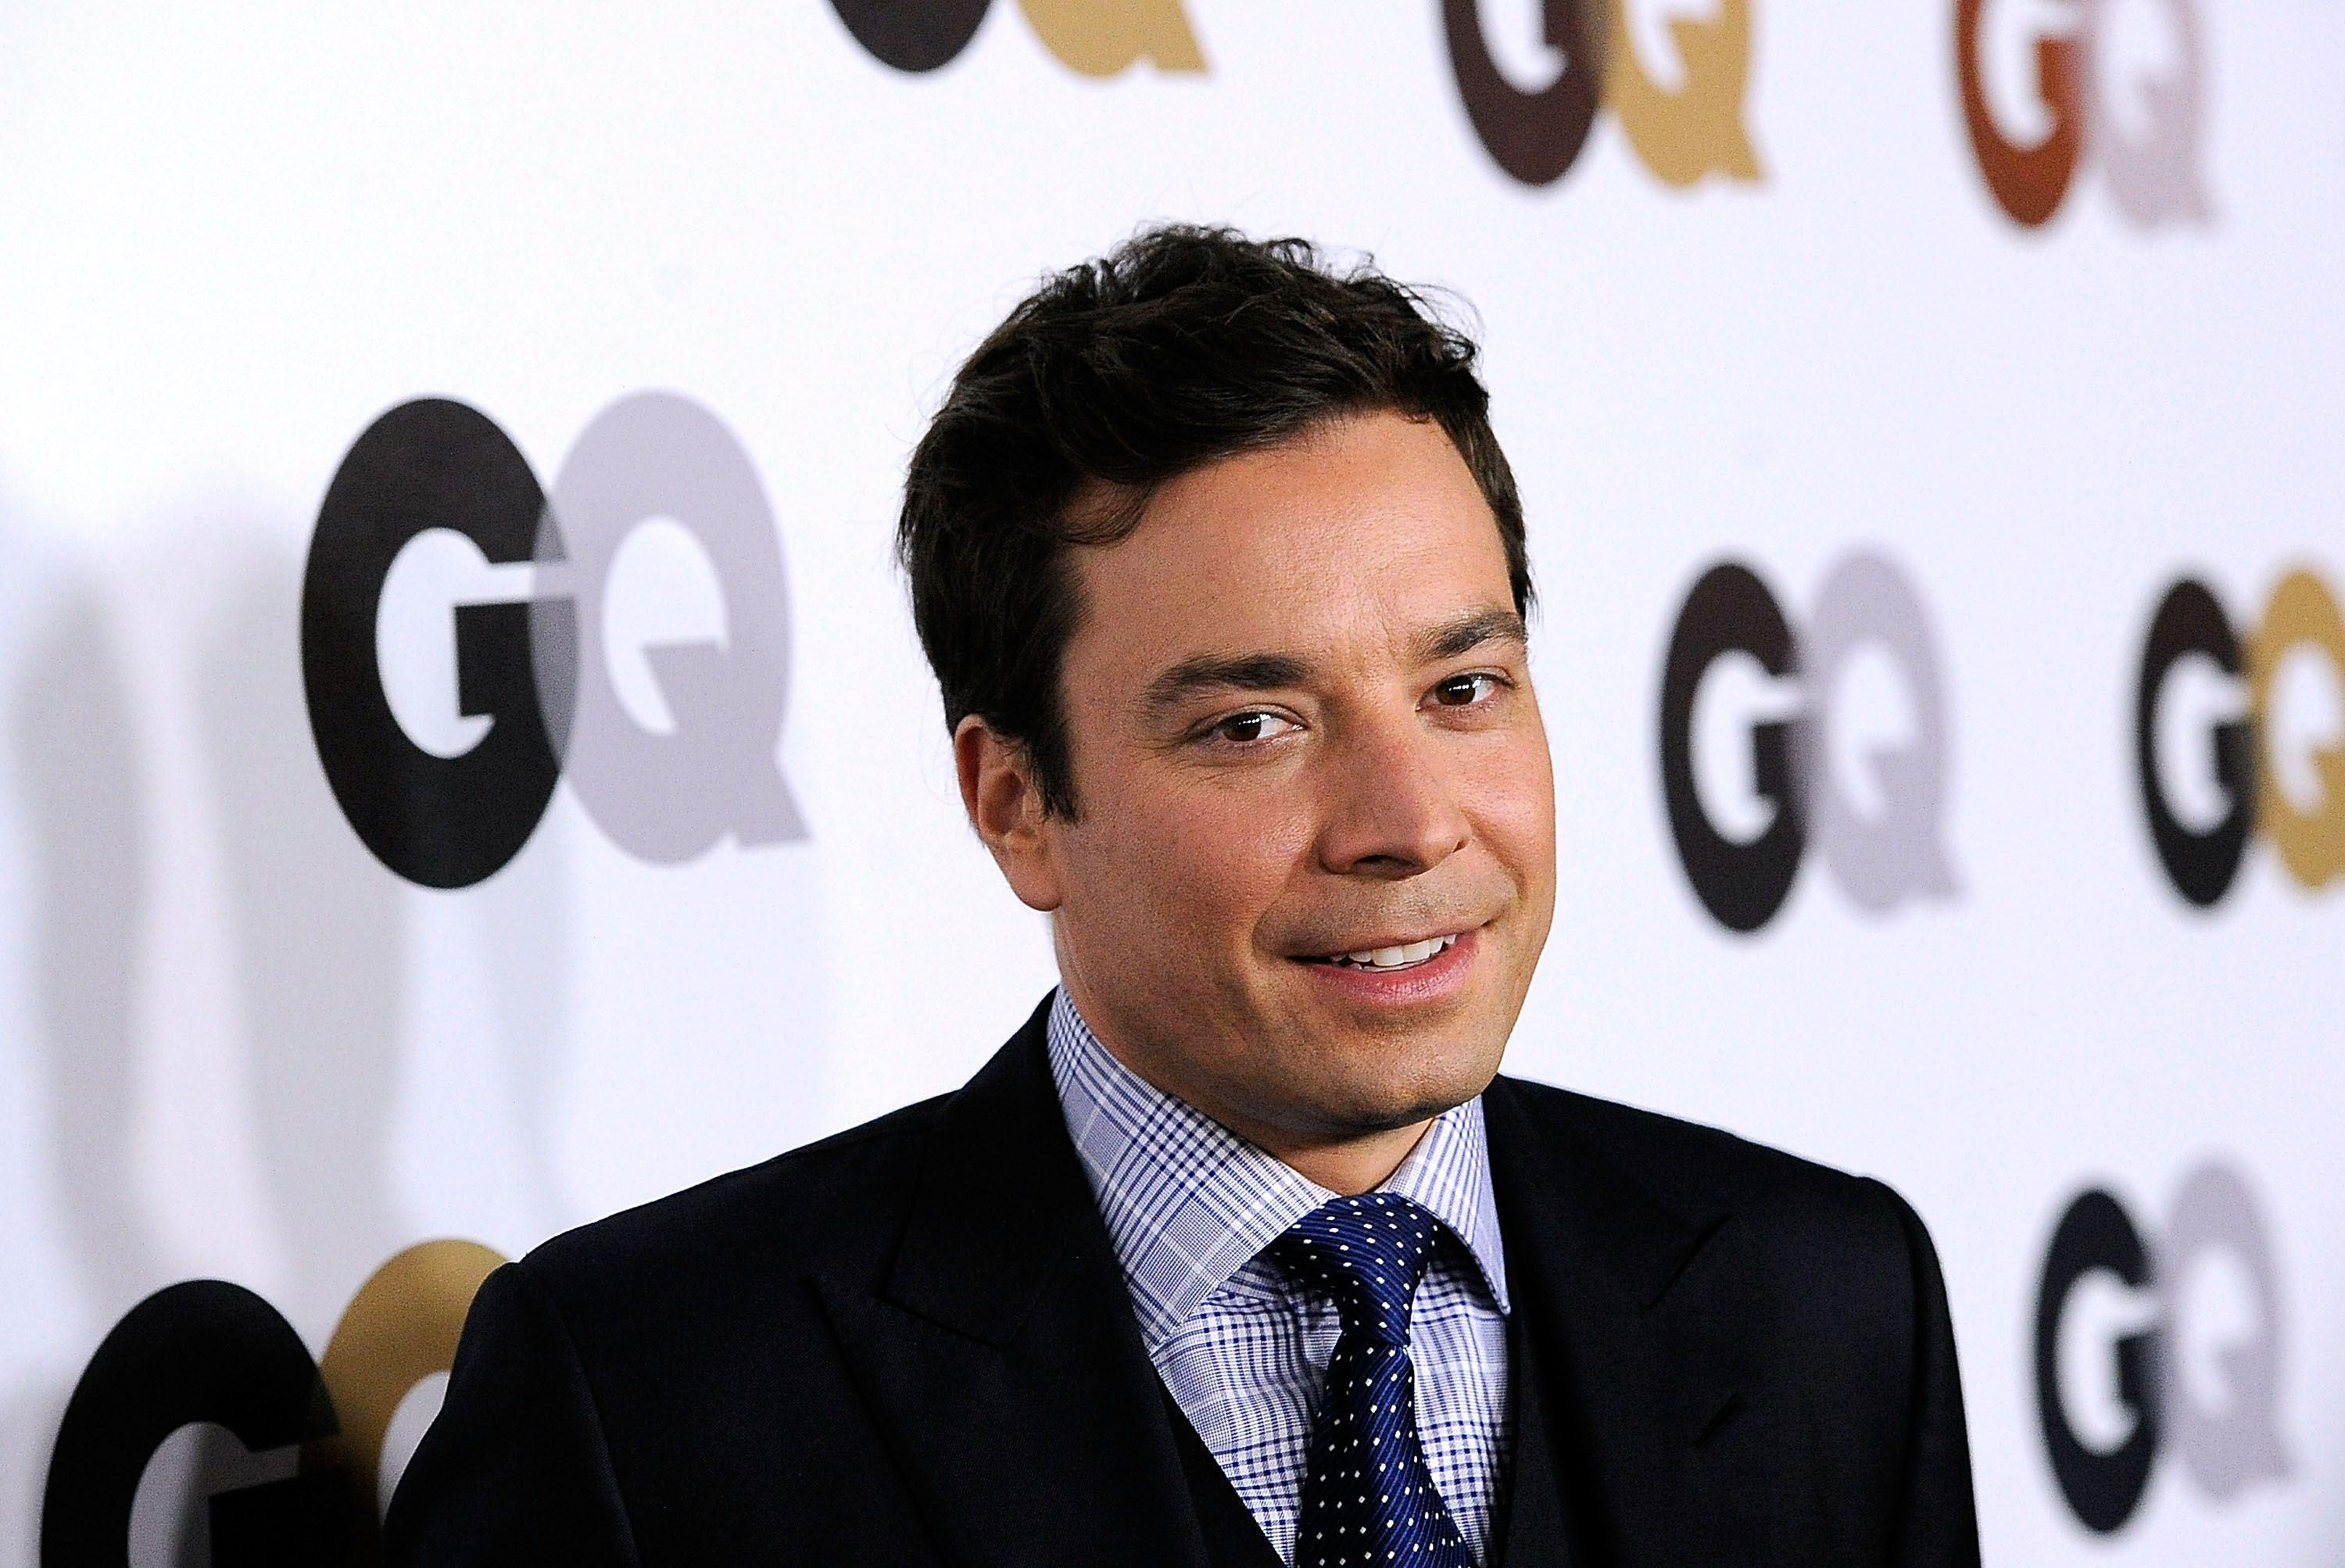 Jimmy Fallon Writes His First Children's Book Inspired By His